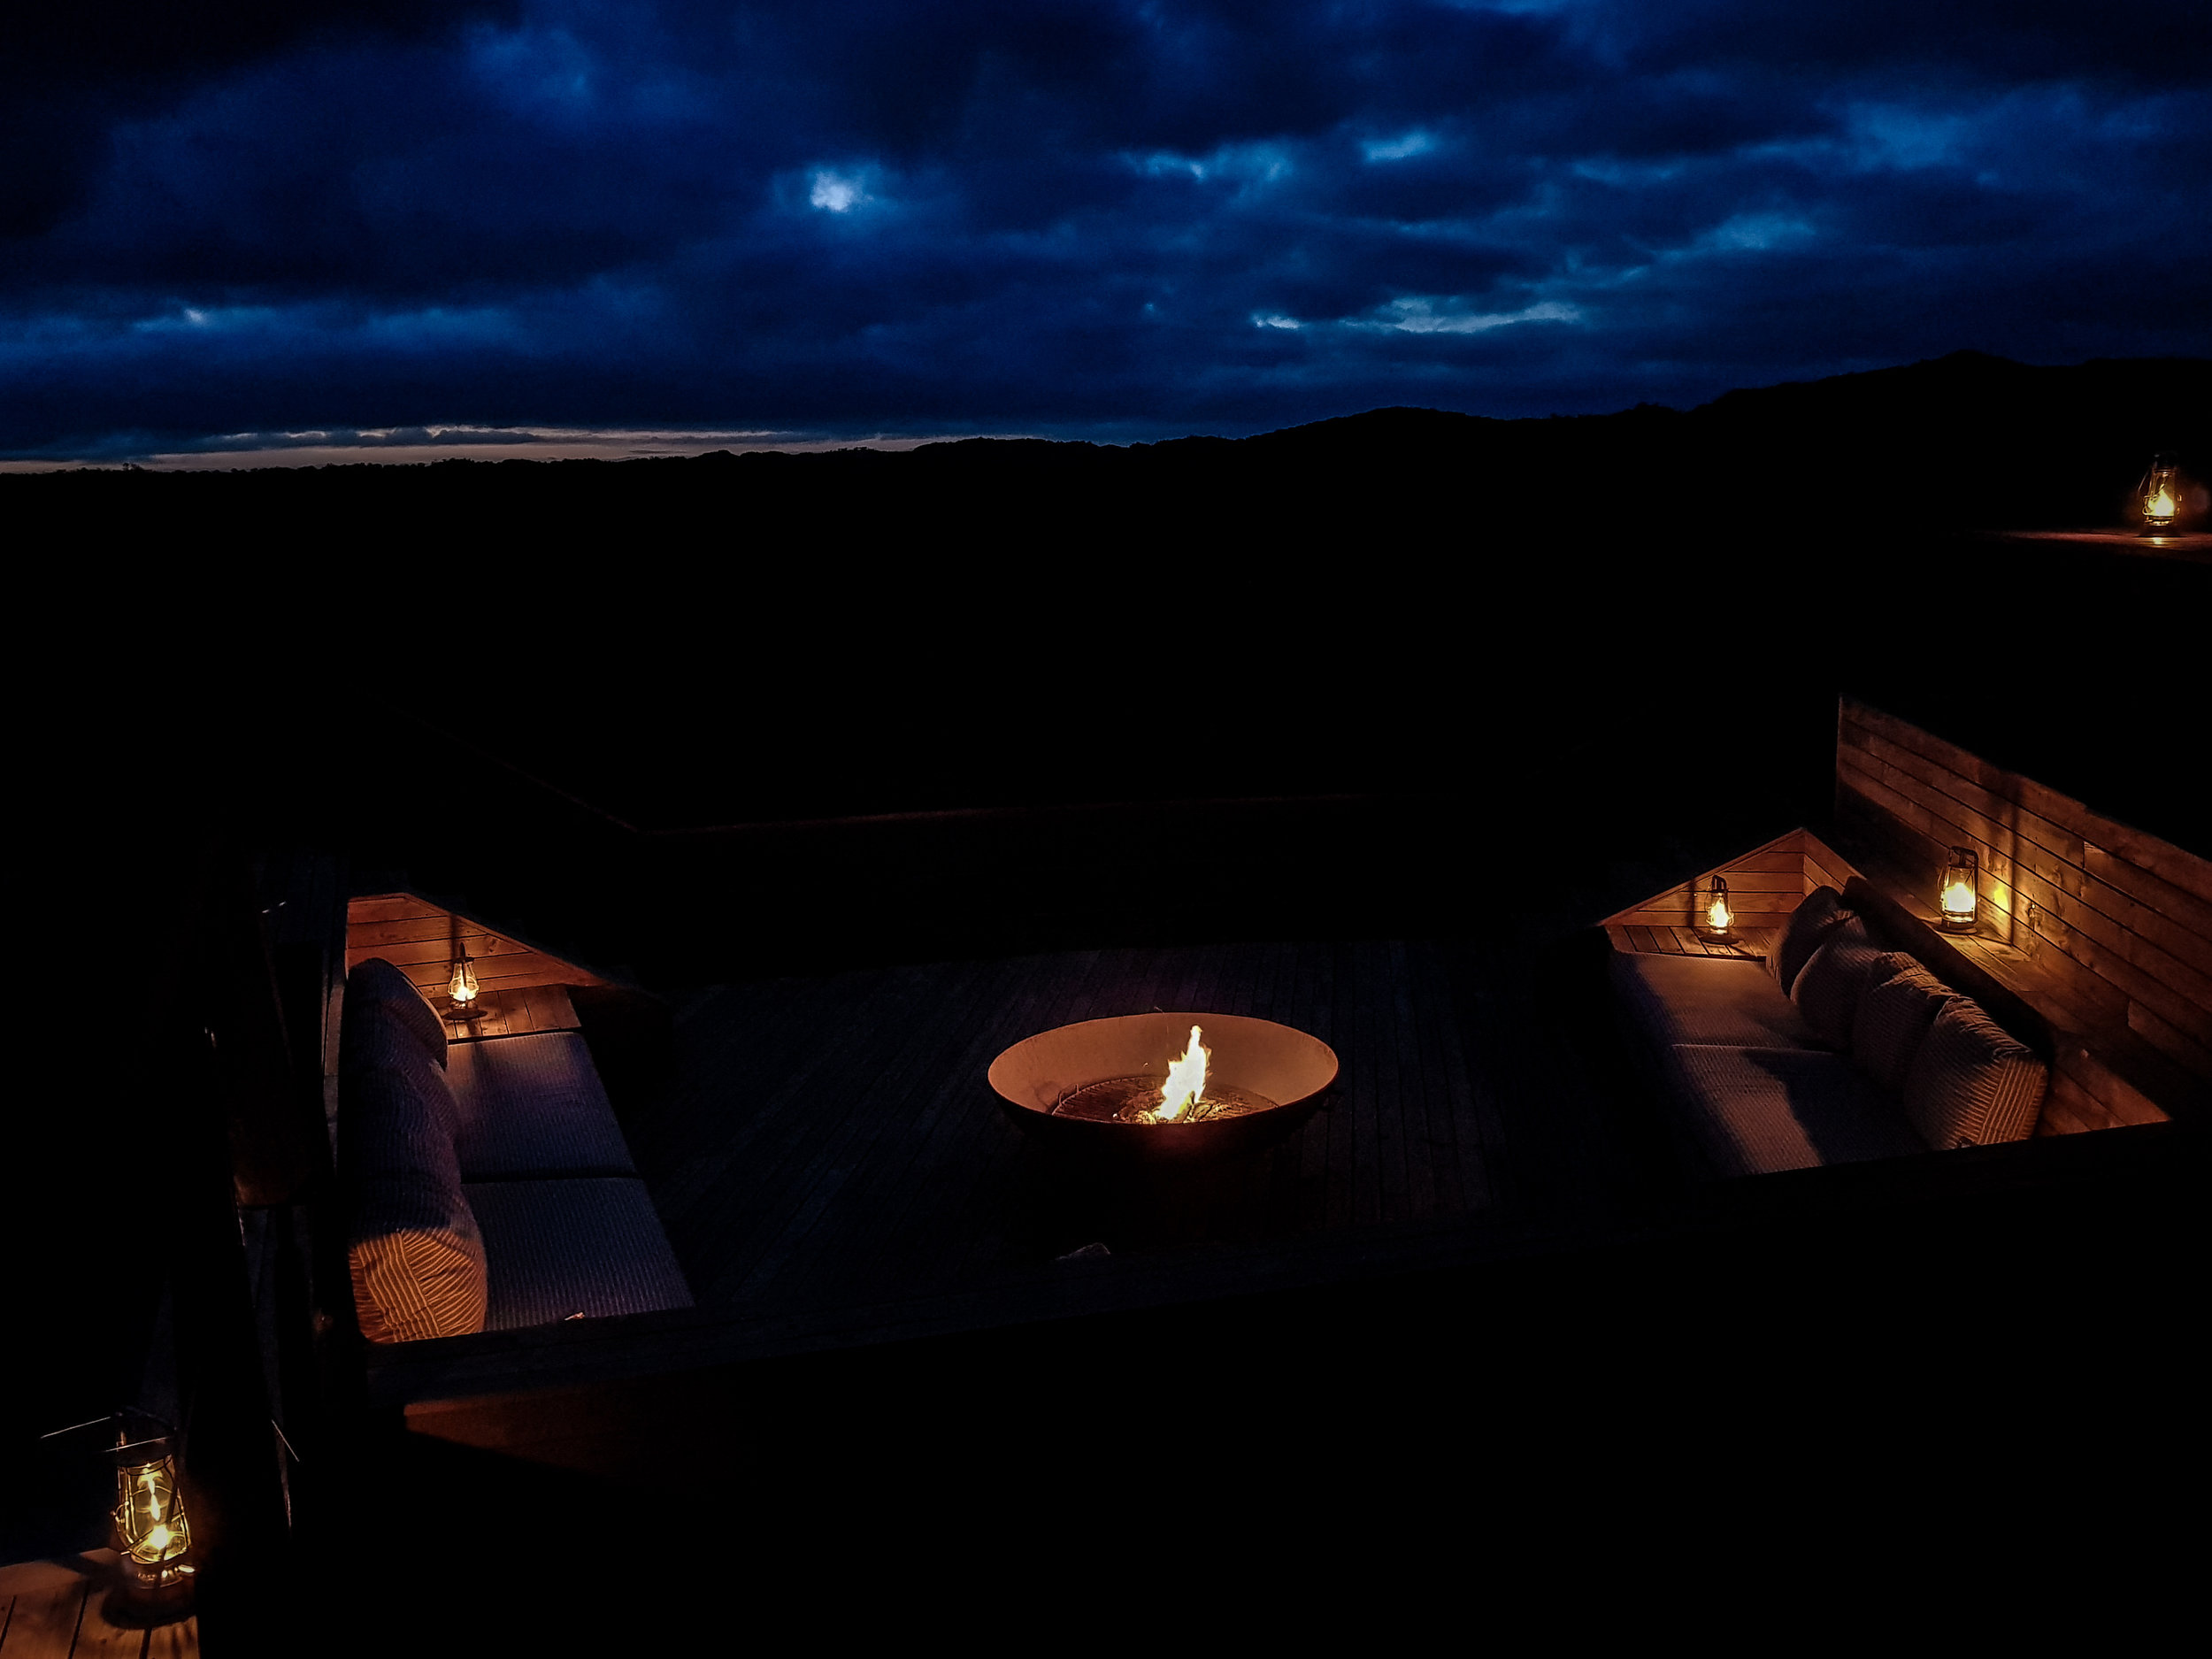 PEL'S POST MAGIC: What better way to spend an evening than around the fire pit, chatting about the day's action and sharing stories over a gin and tonic.